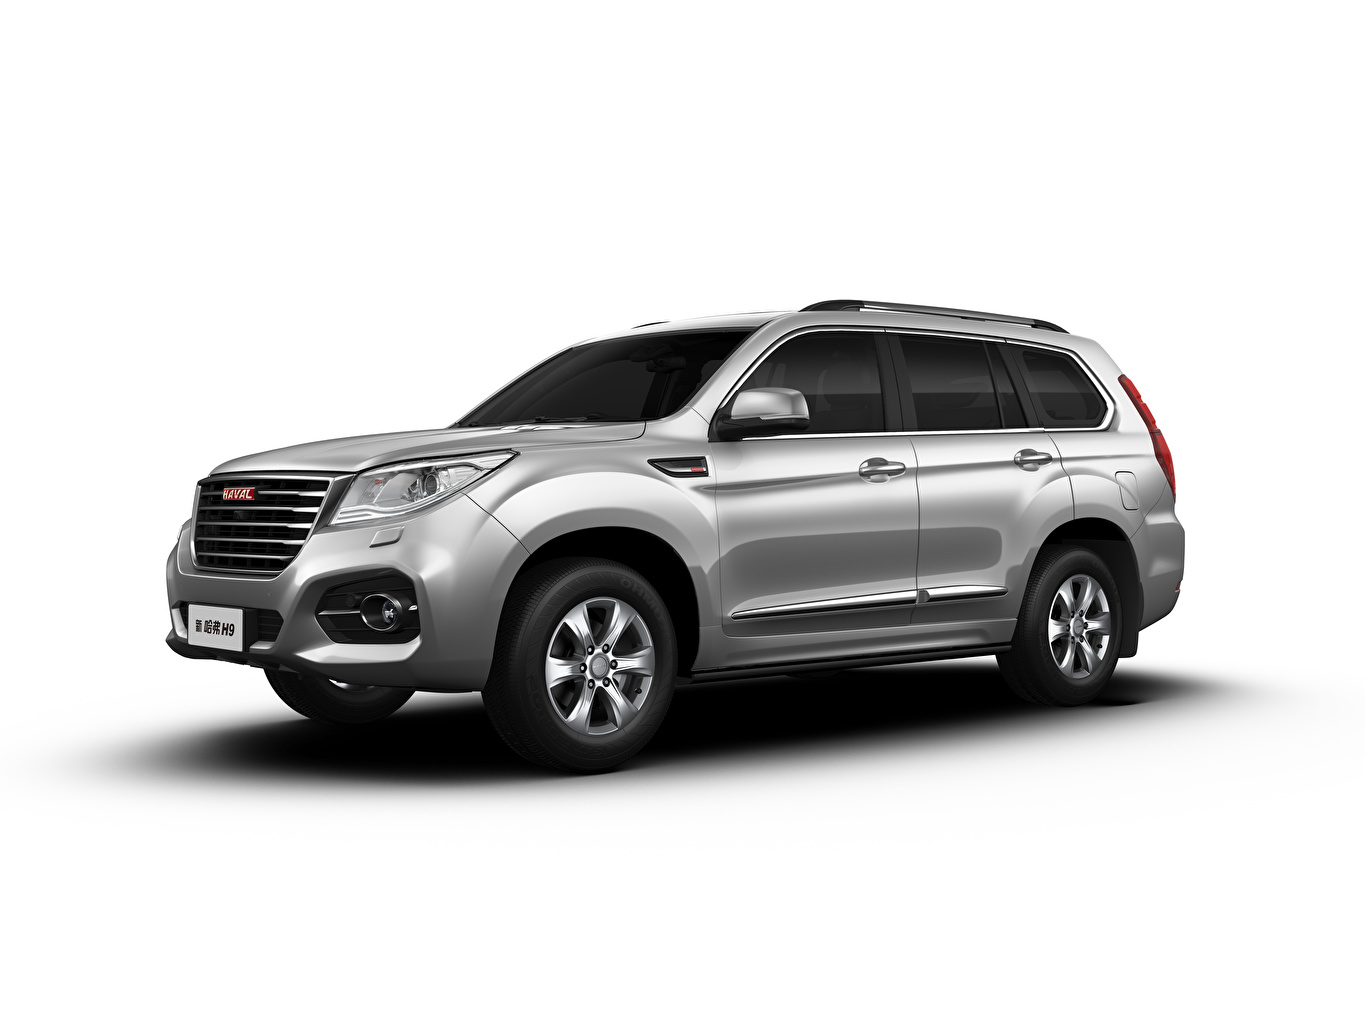 Photo Haval SUV H9, 2019 gray Cars Side Metallic White background Sport utility vehicle Grey auto automobile